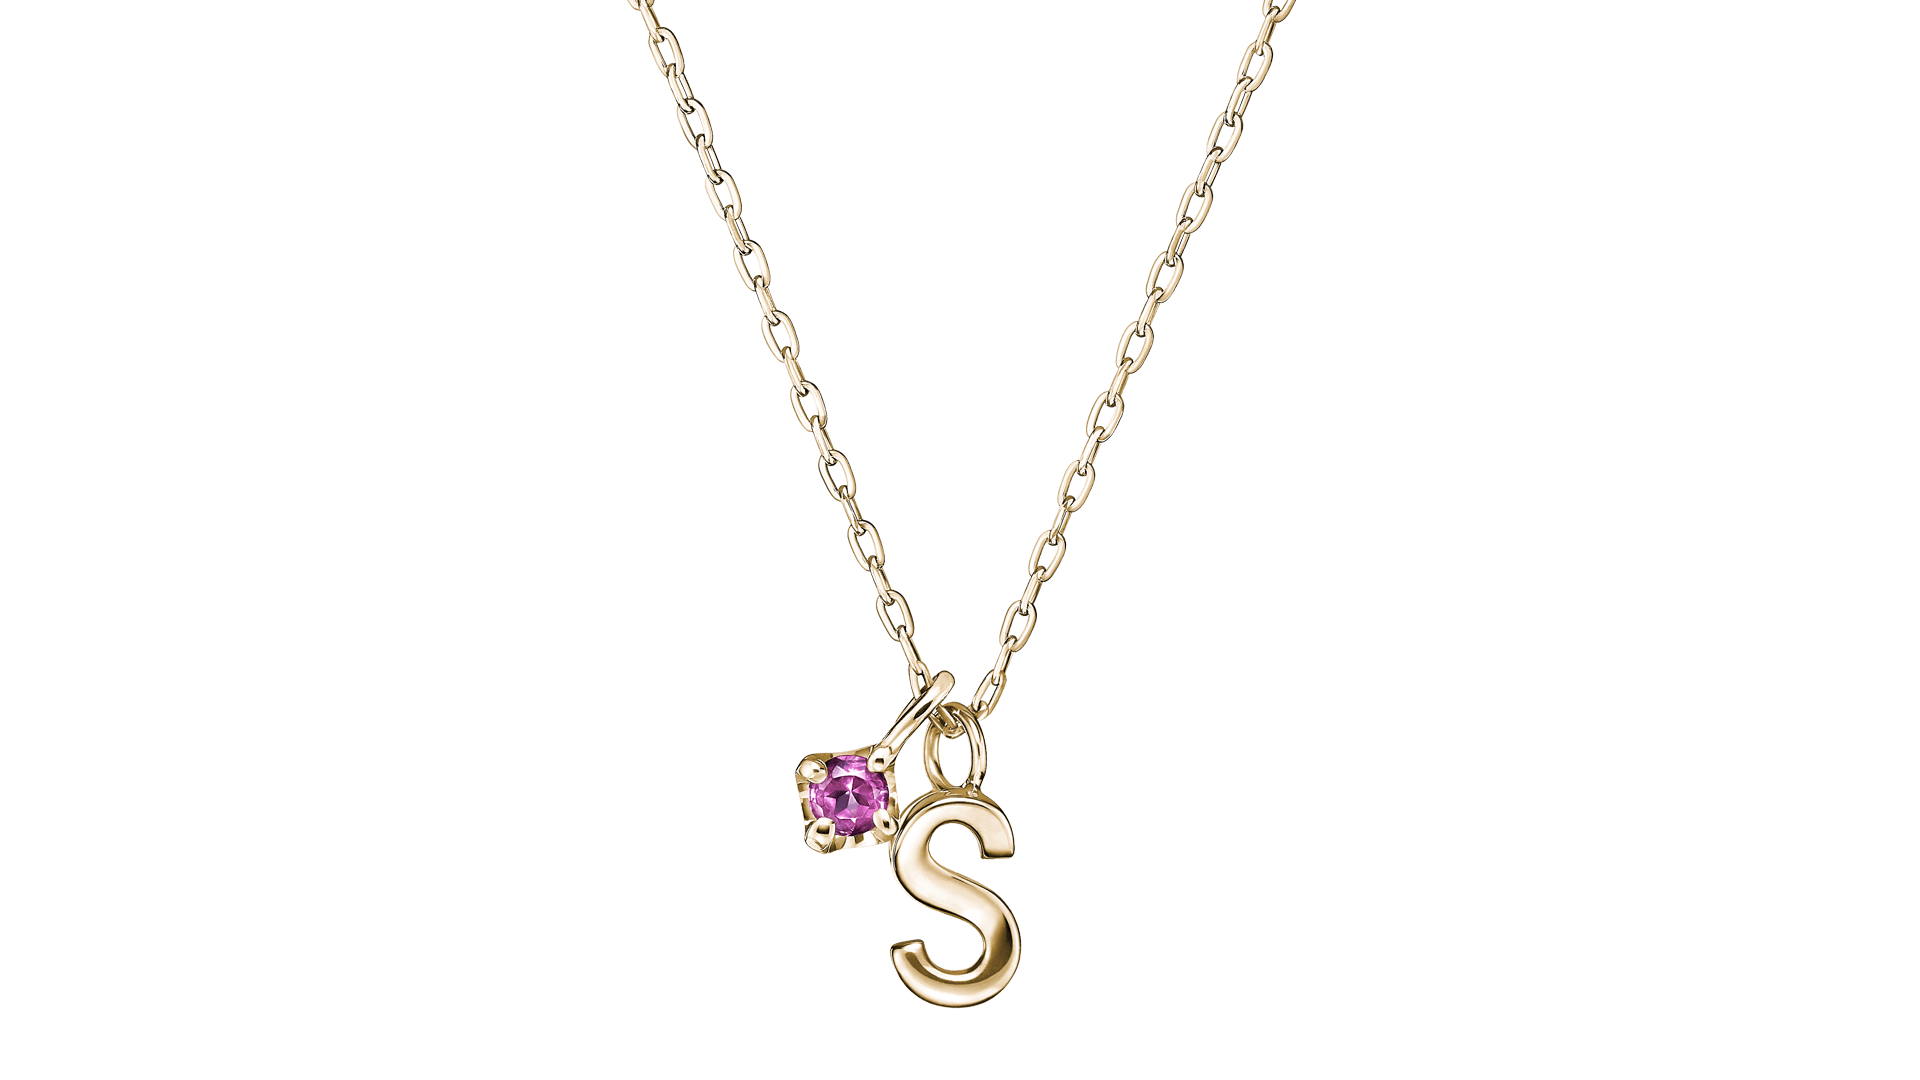 Personal Necklace パーソナルネックレス   アニバーサリージュエリーサムネイル 2